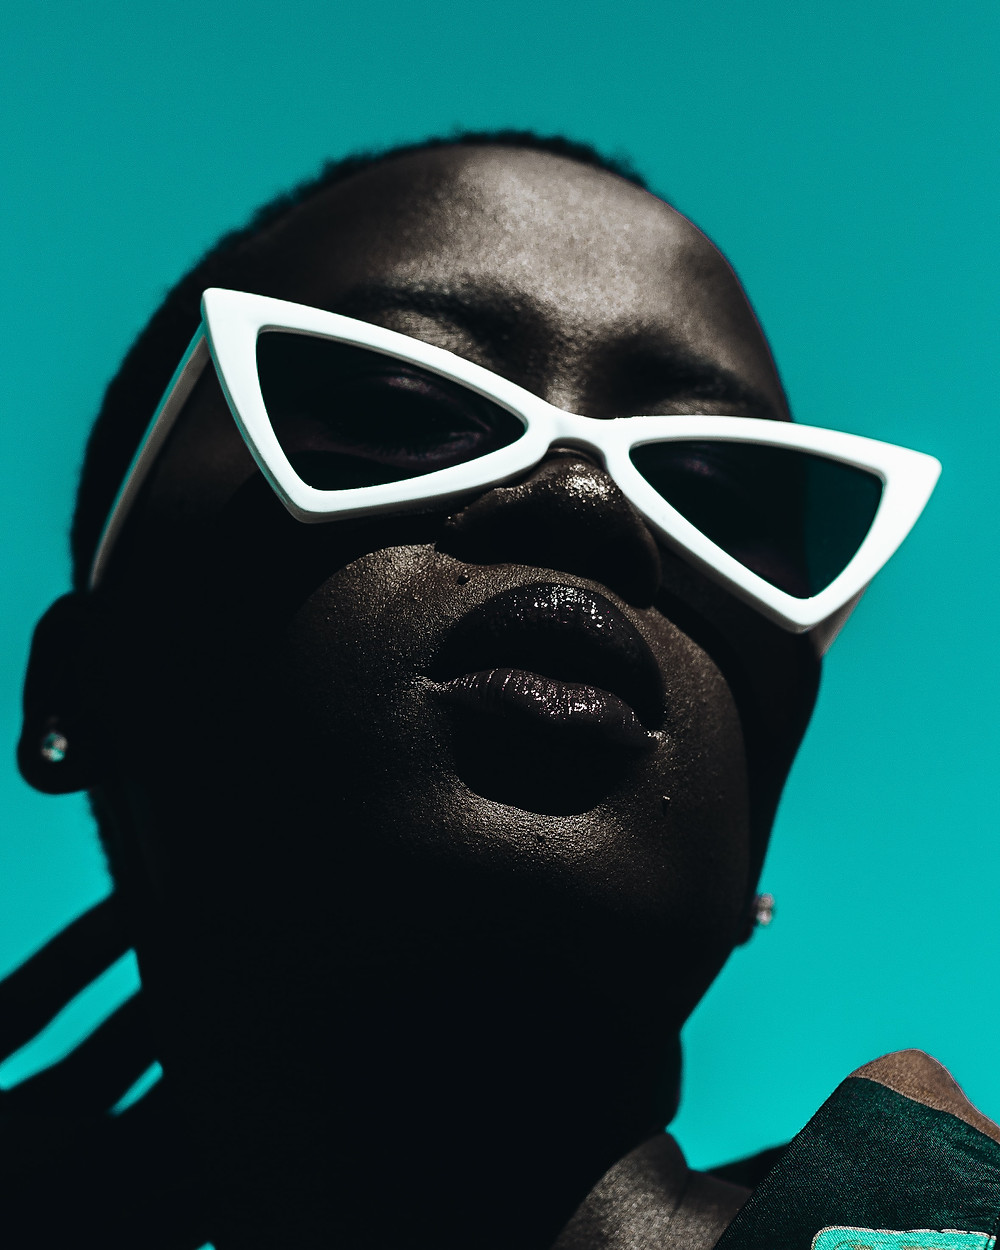 Dark-skinned Black girl wearing white-trimmed sunglasses in front of a teal background